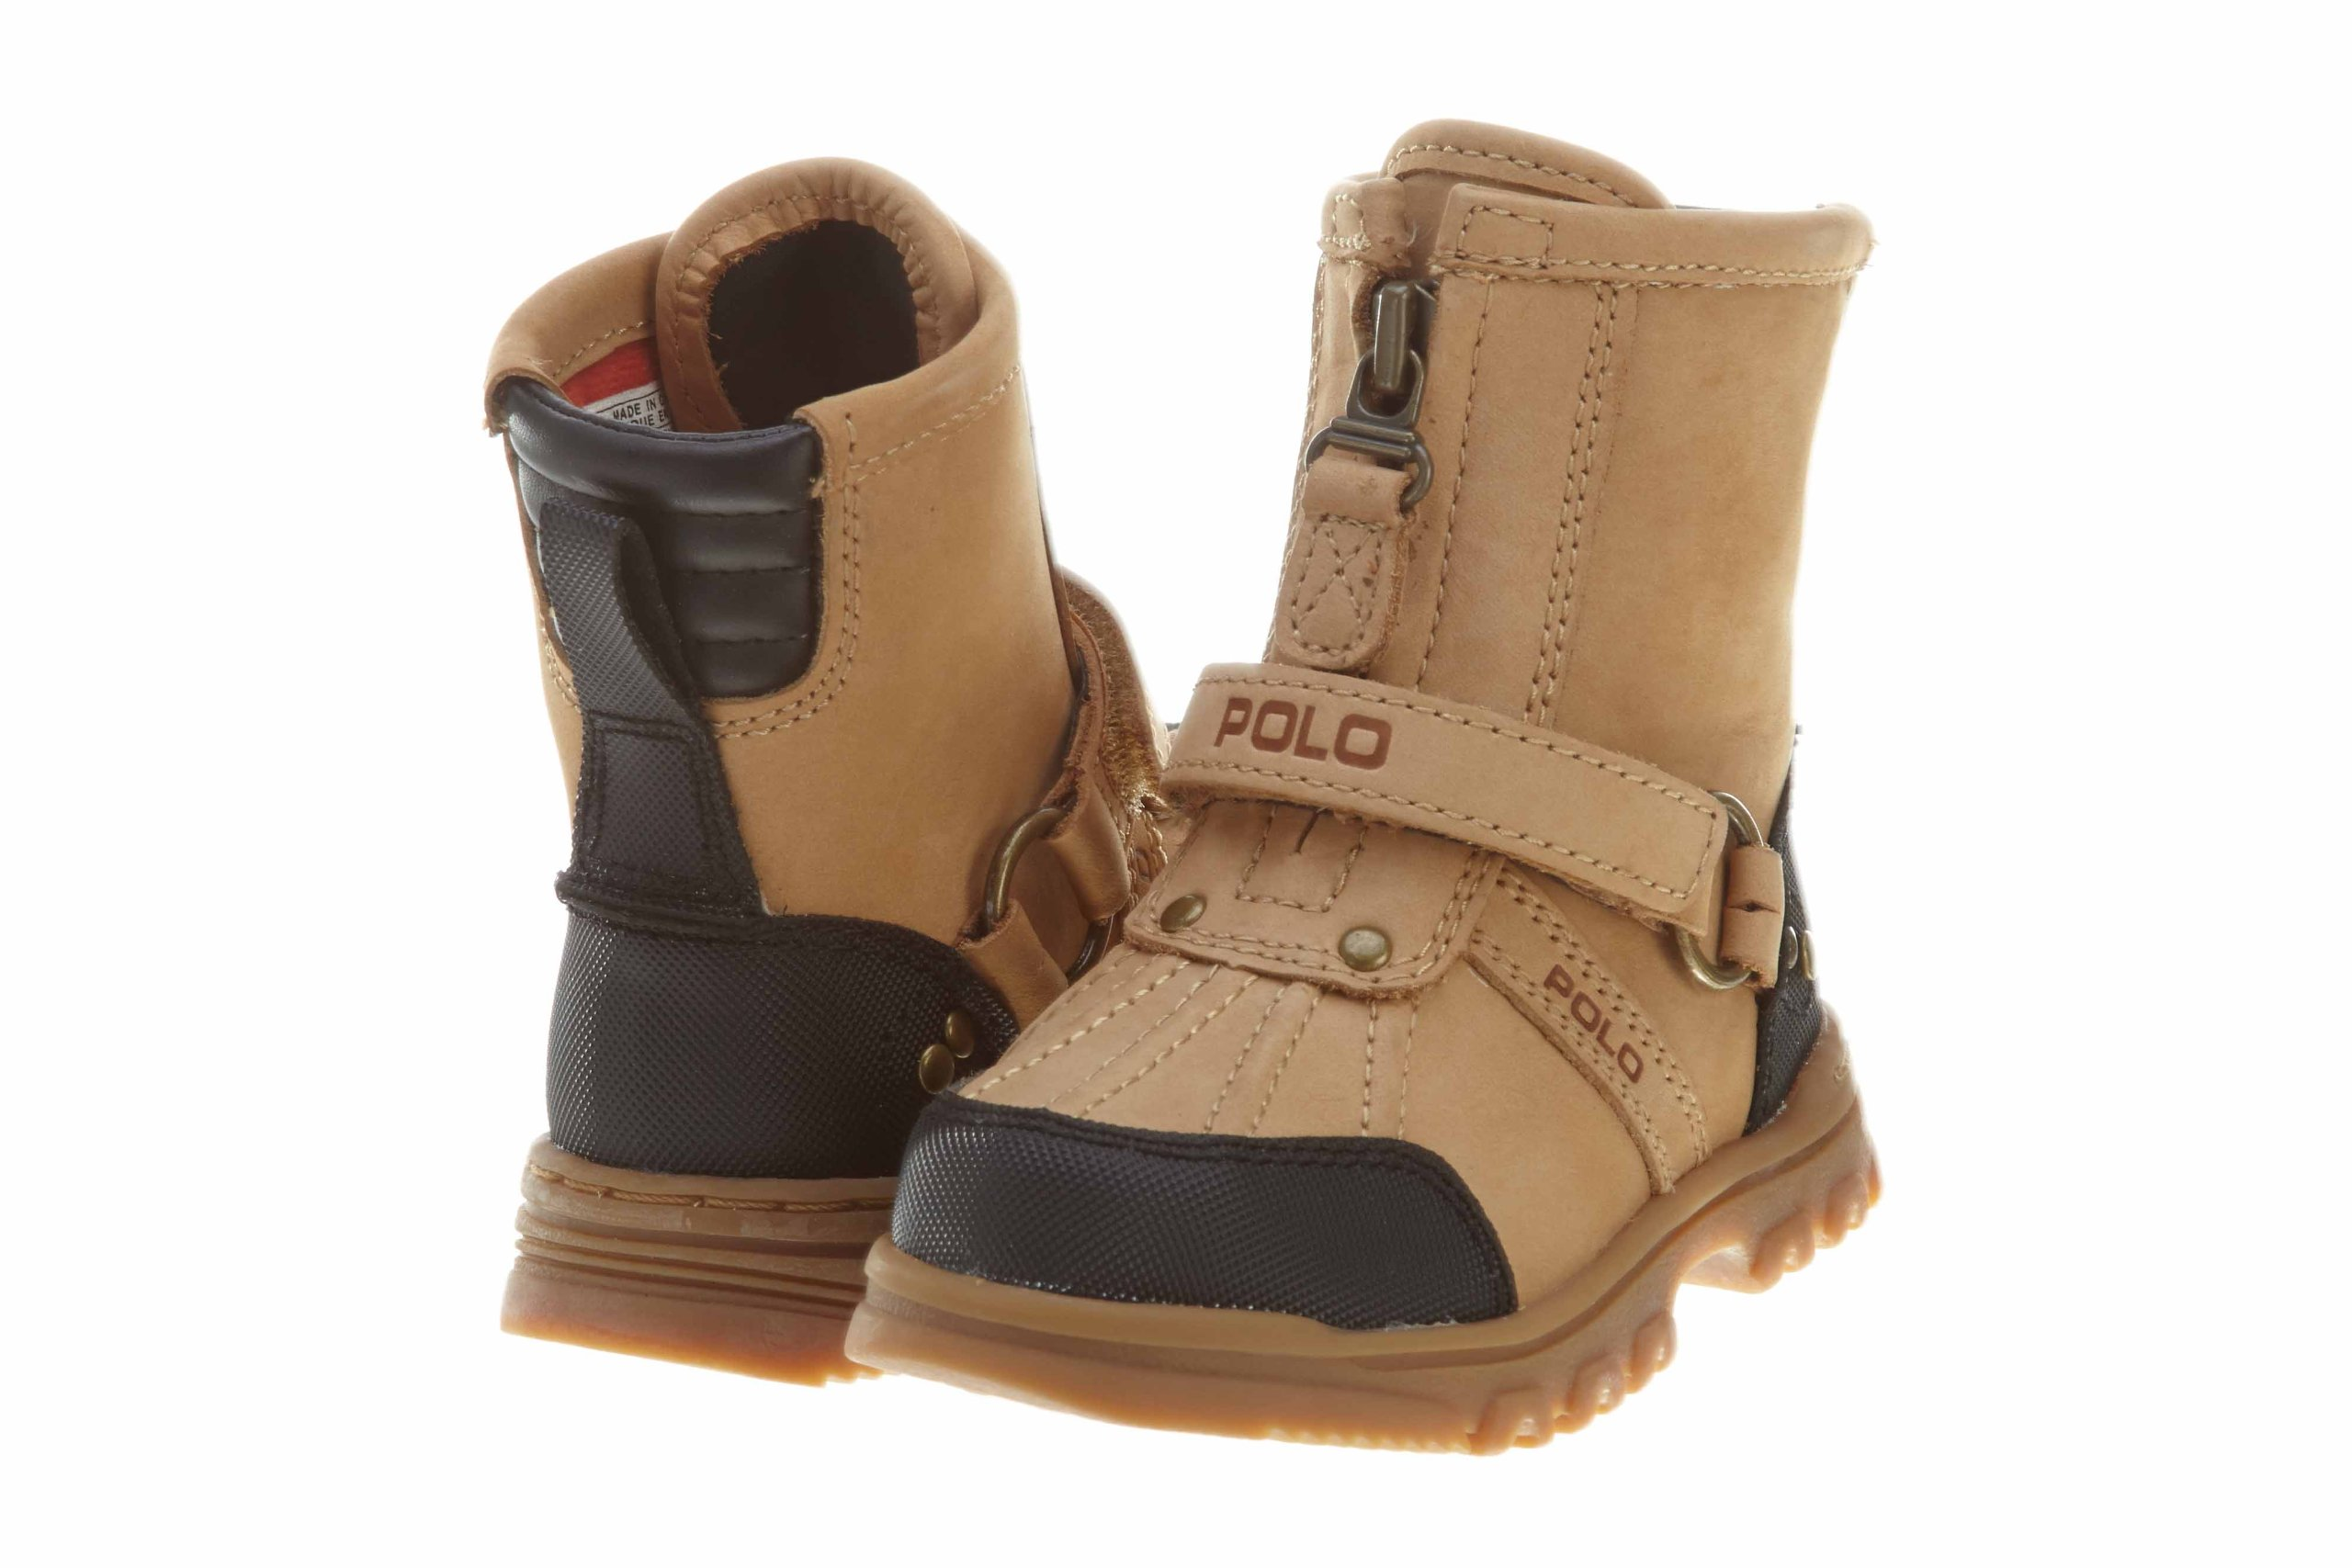 Polo Poloconquest Hi Little Kids Style: 90238TD-CASHEW Size: 5.5